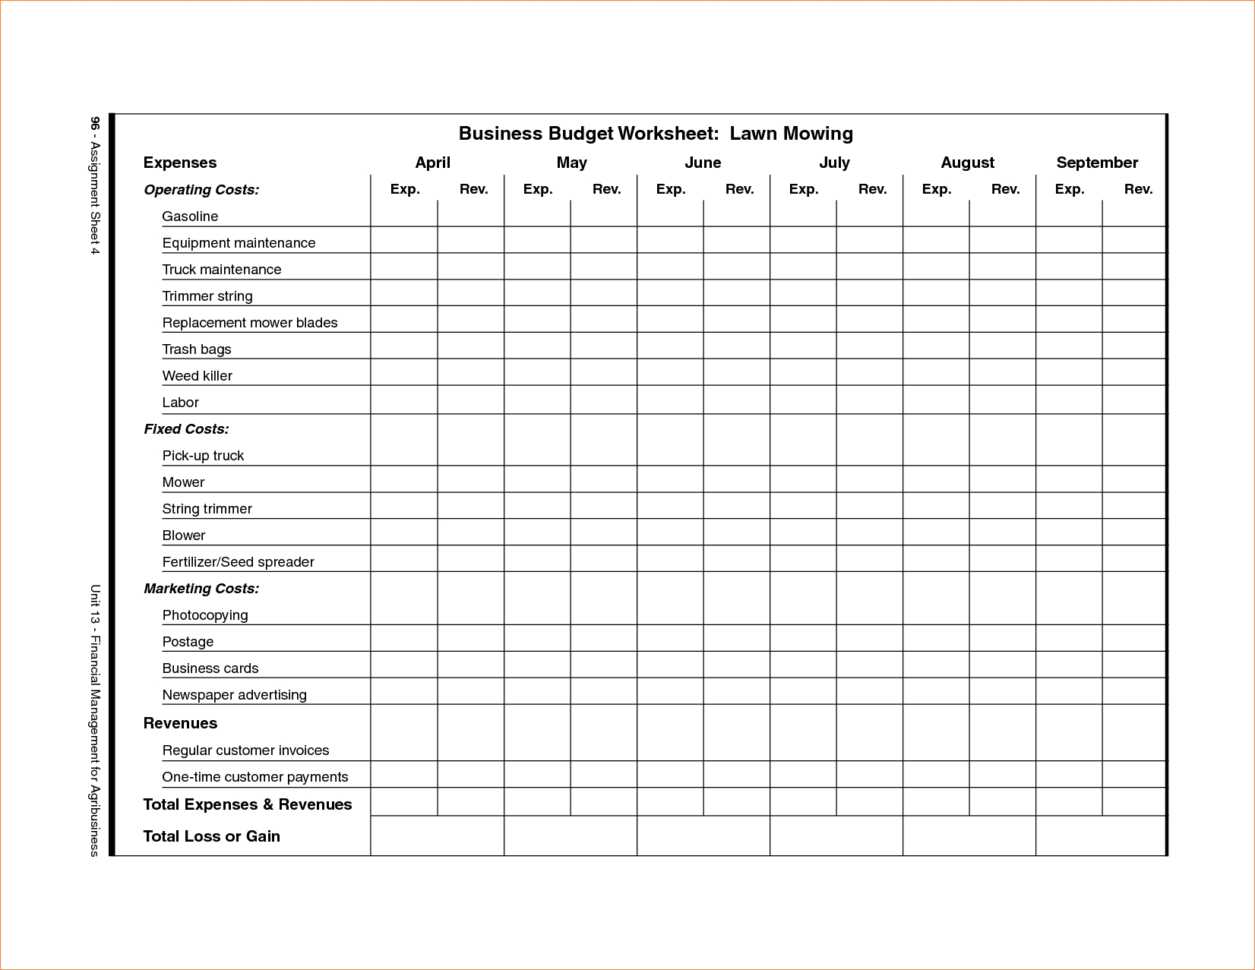 Lawn Care Schedule Spreadsheet Inside Lawn Care Schedule Spreadsheet And Lawn Care Business Expenses With